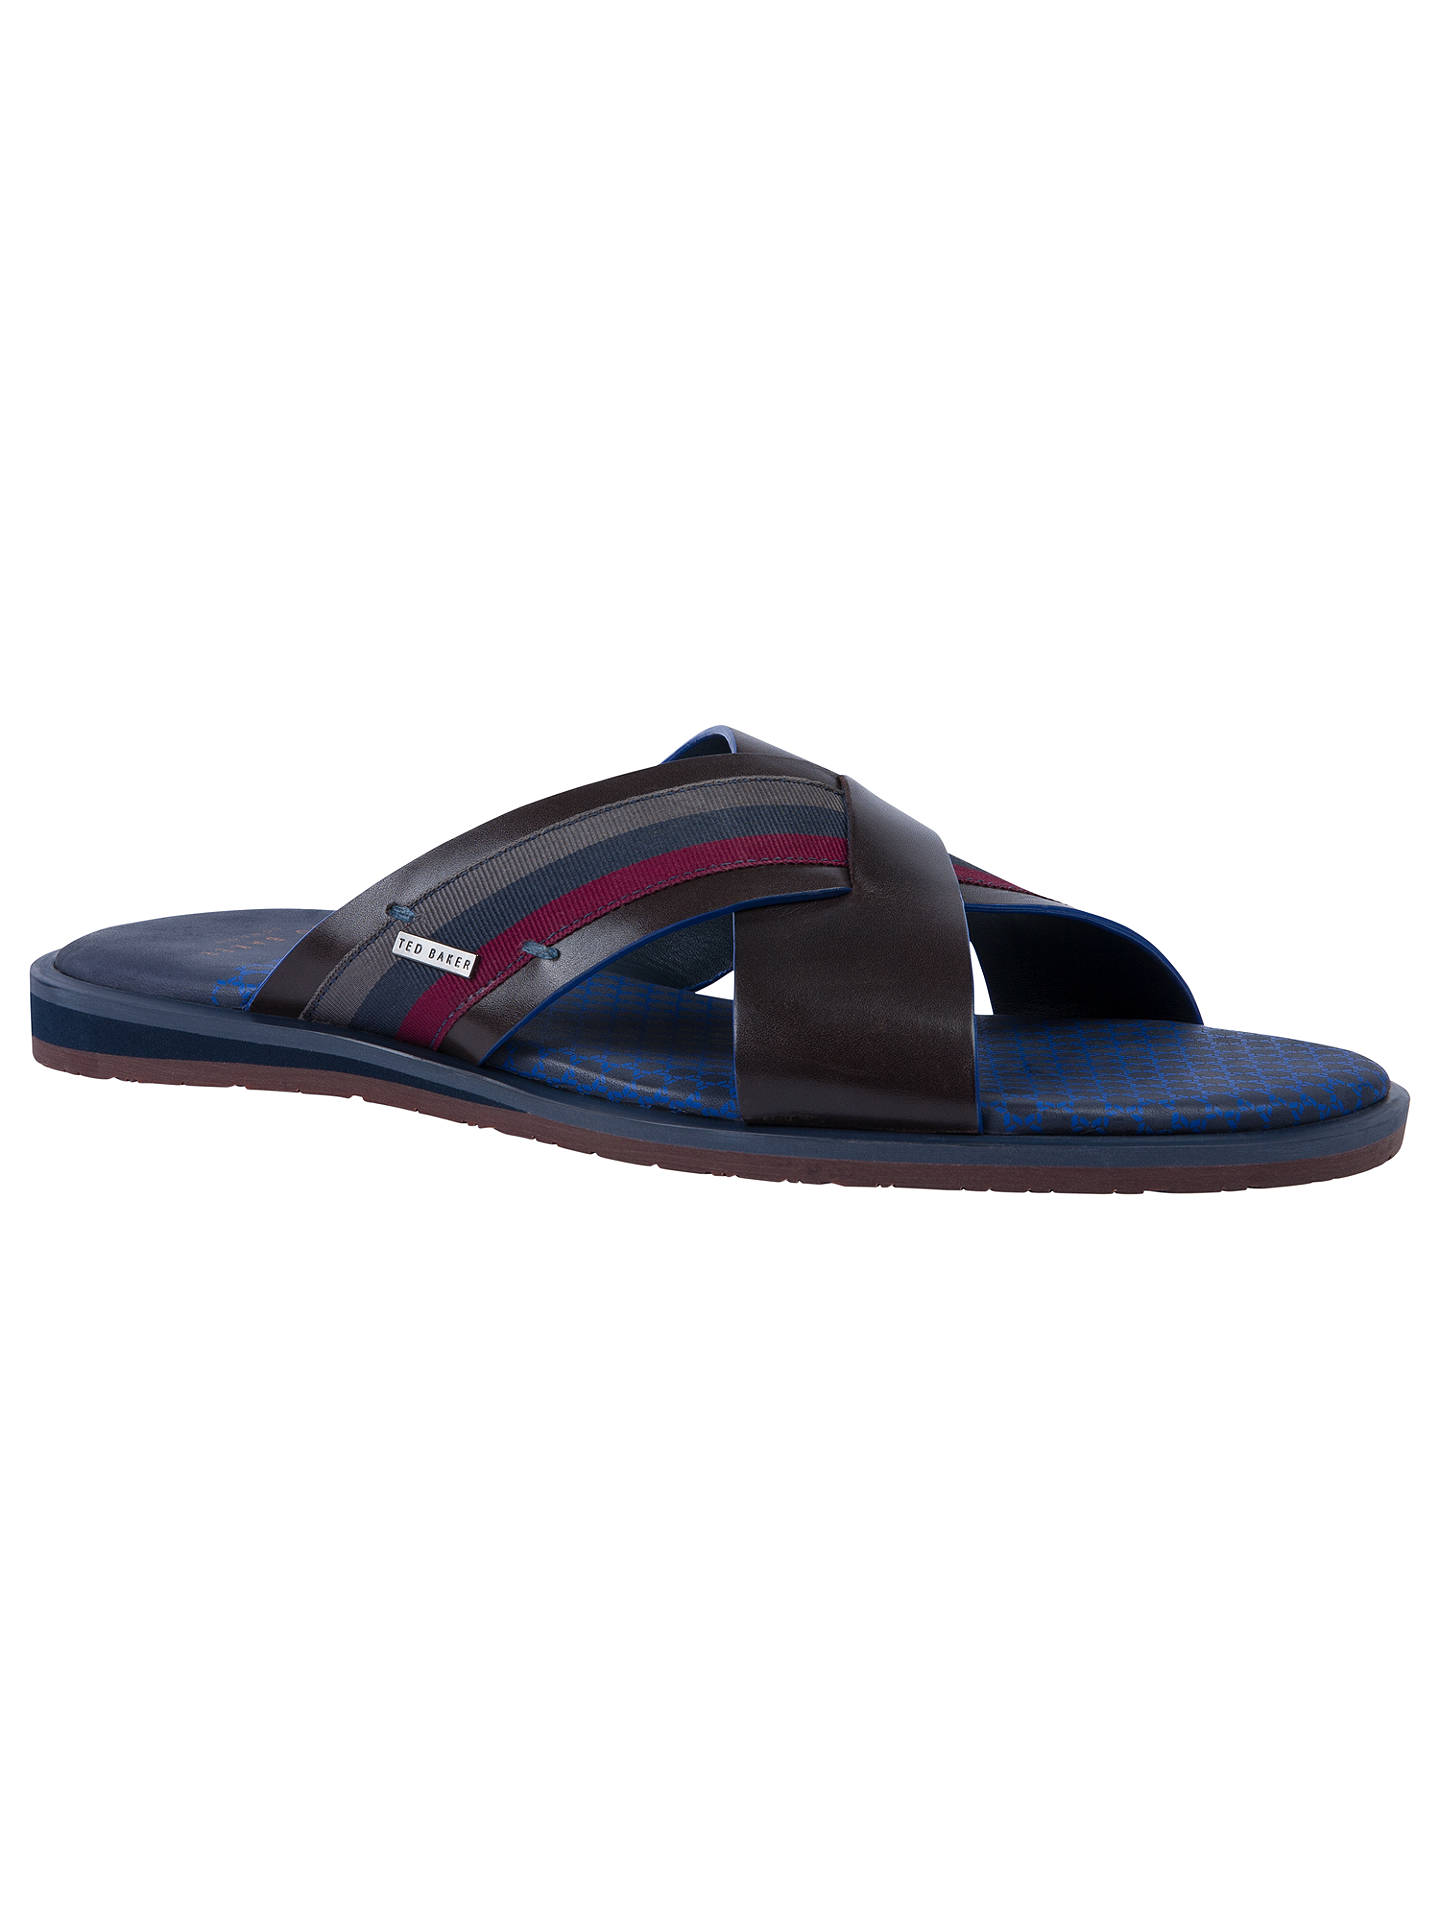 a34bca0f2 Ted Baker Farrull Cross Over Sandals at John Lewis   Partners